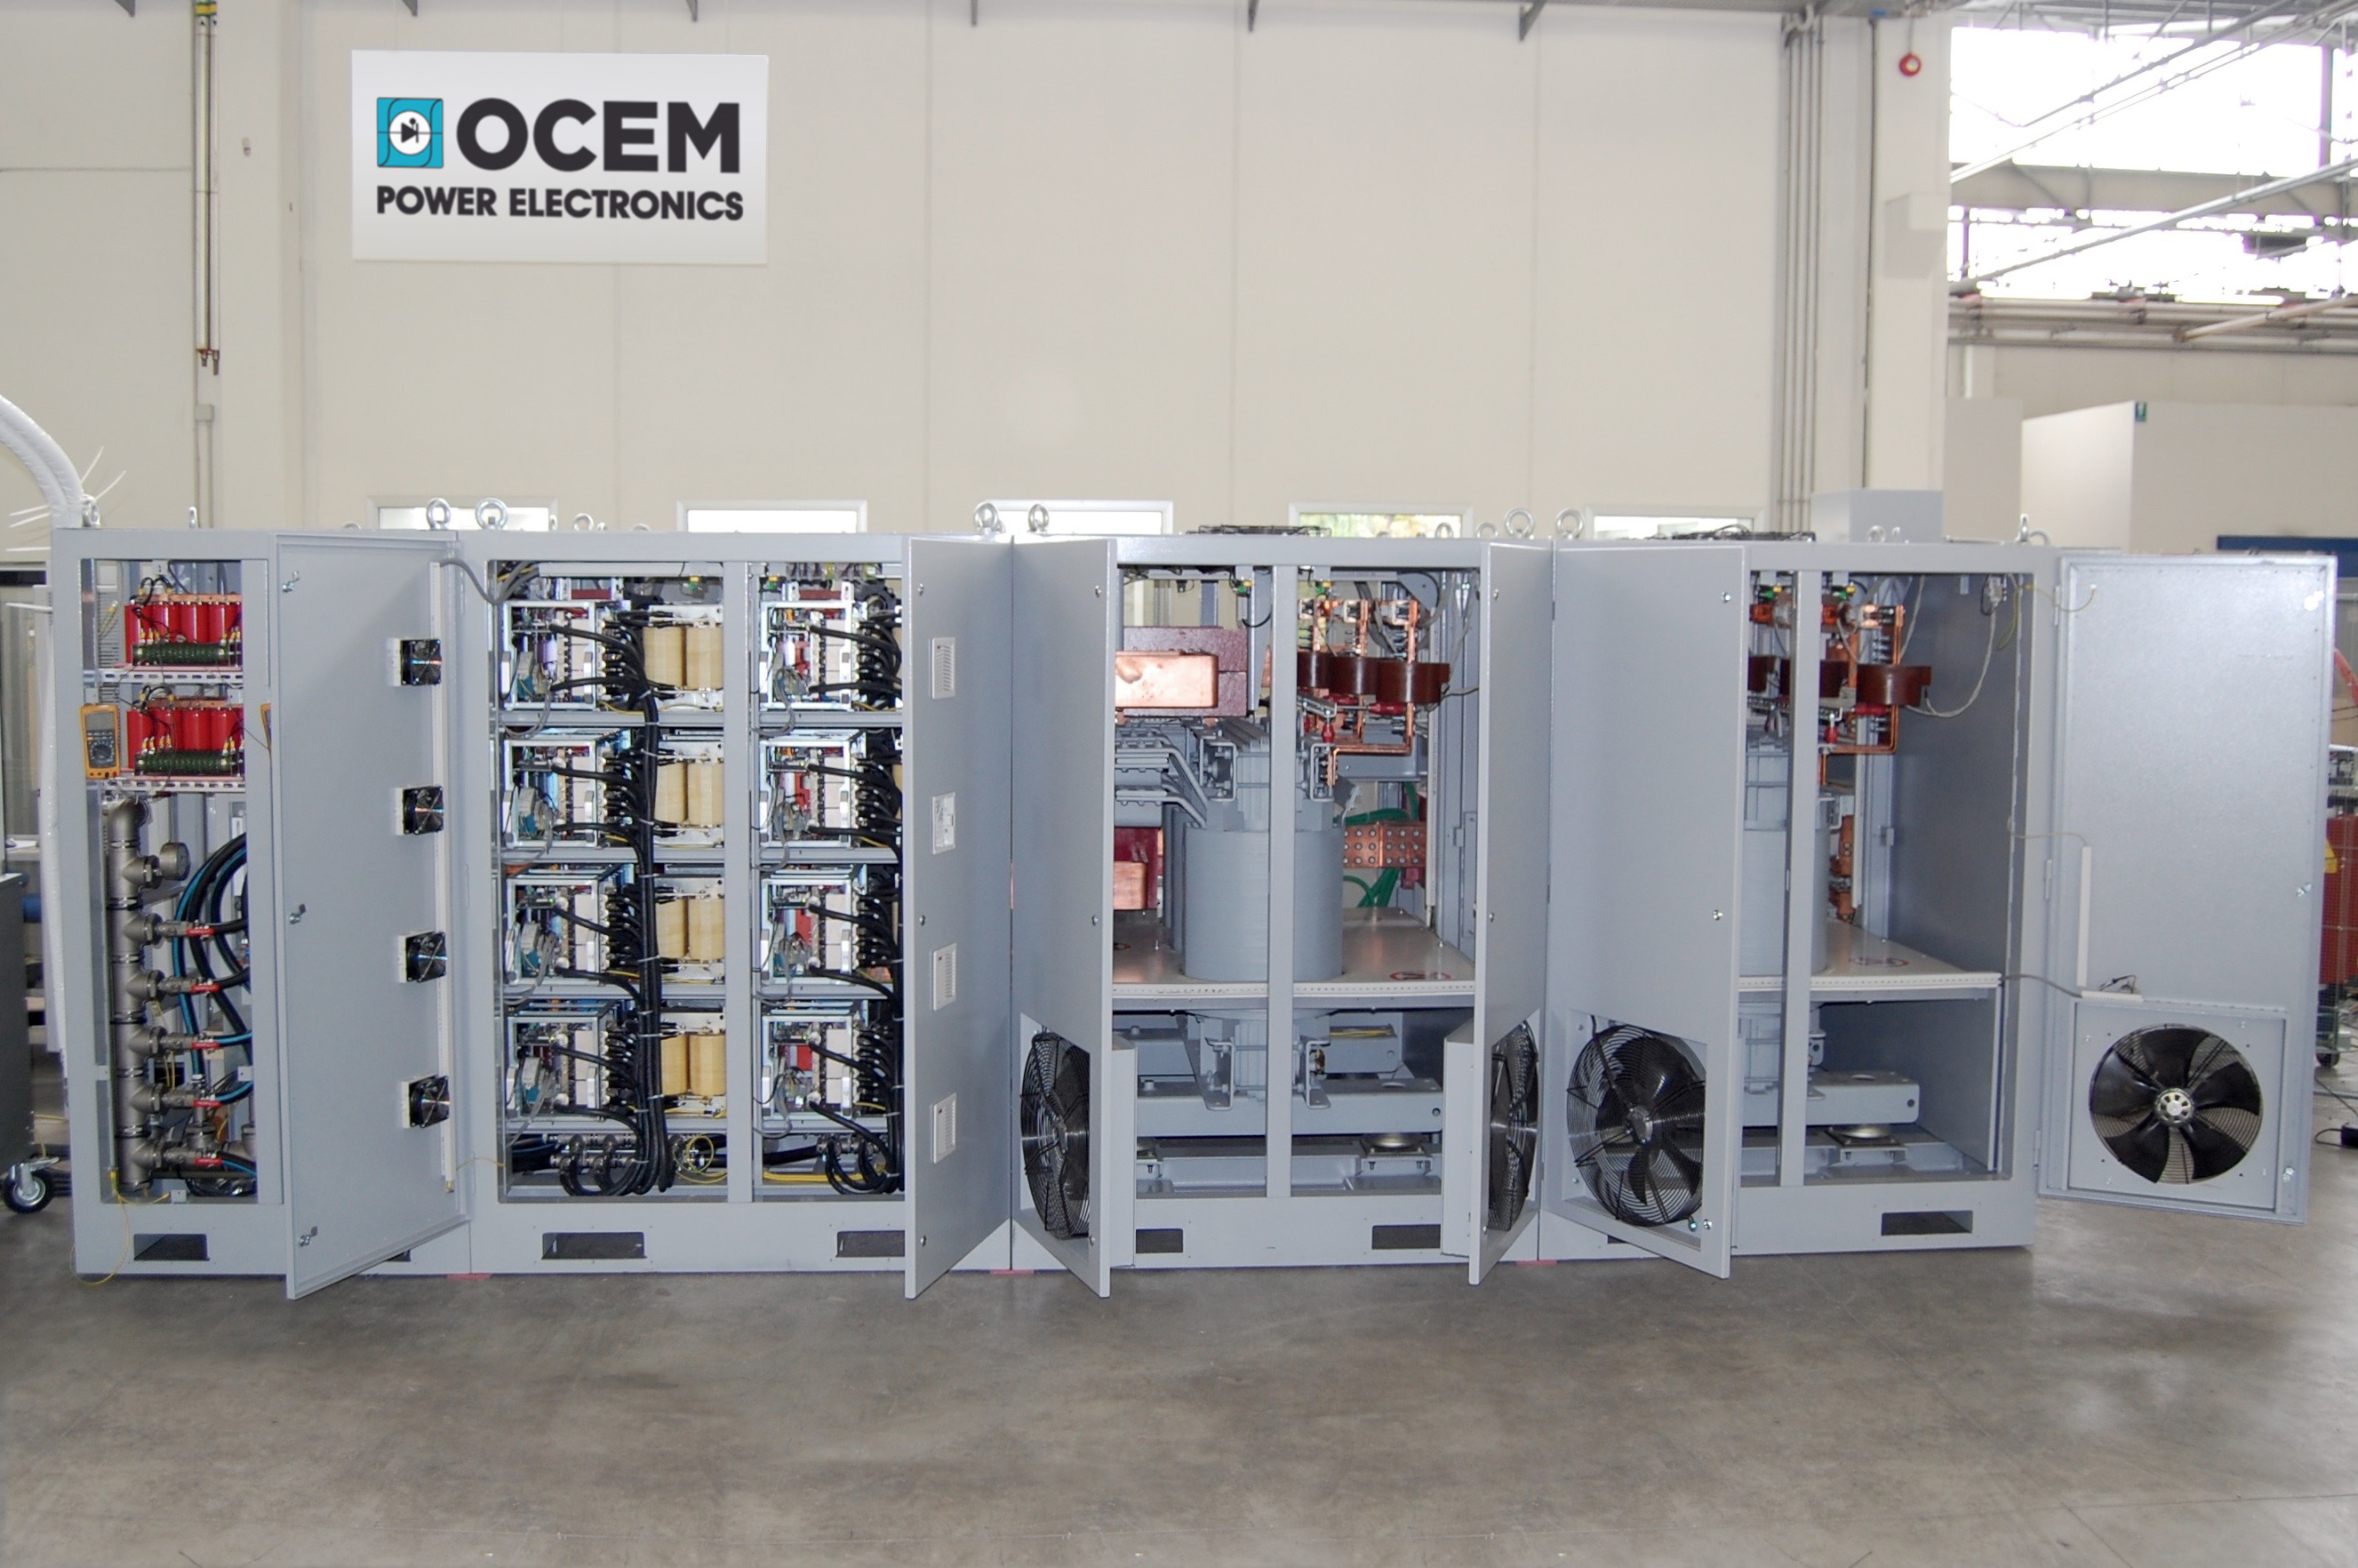 OCEM co-sponsors conference on cyclotron technology and applications